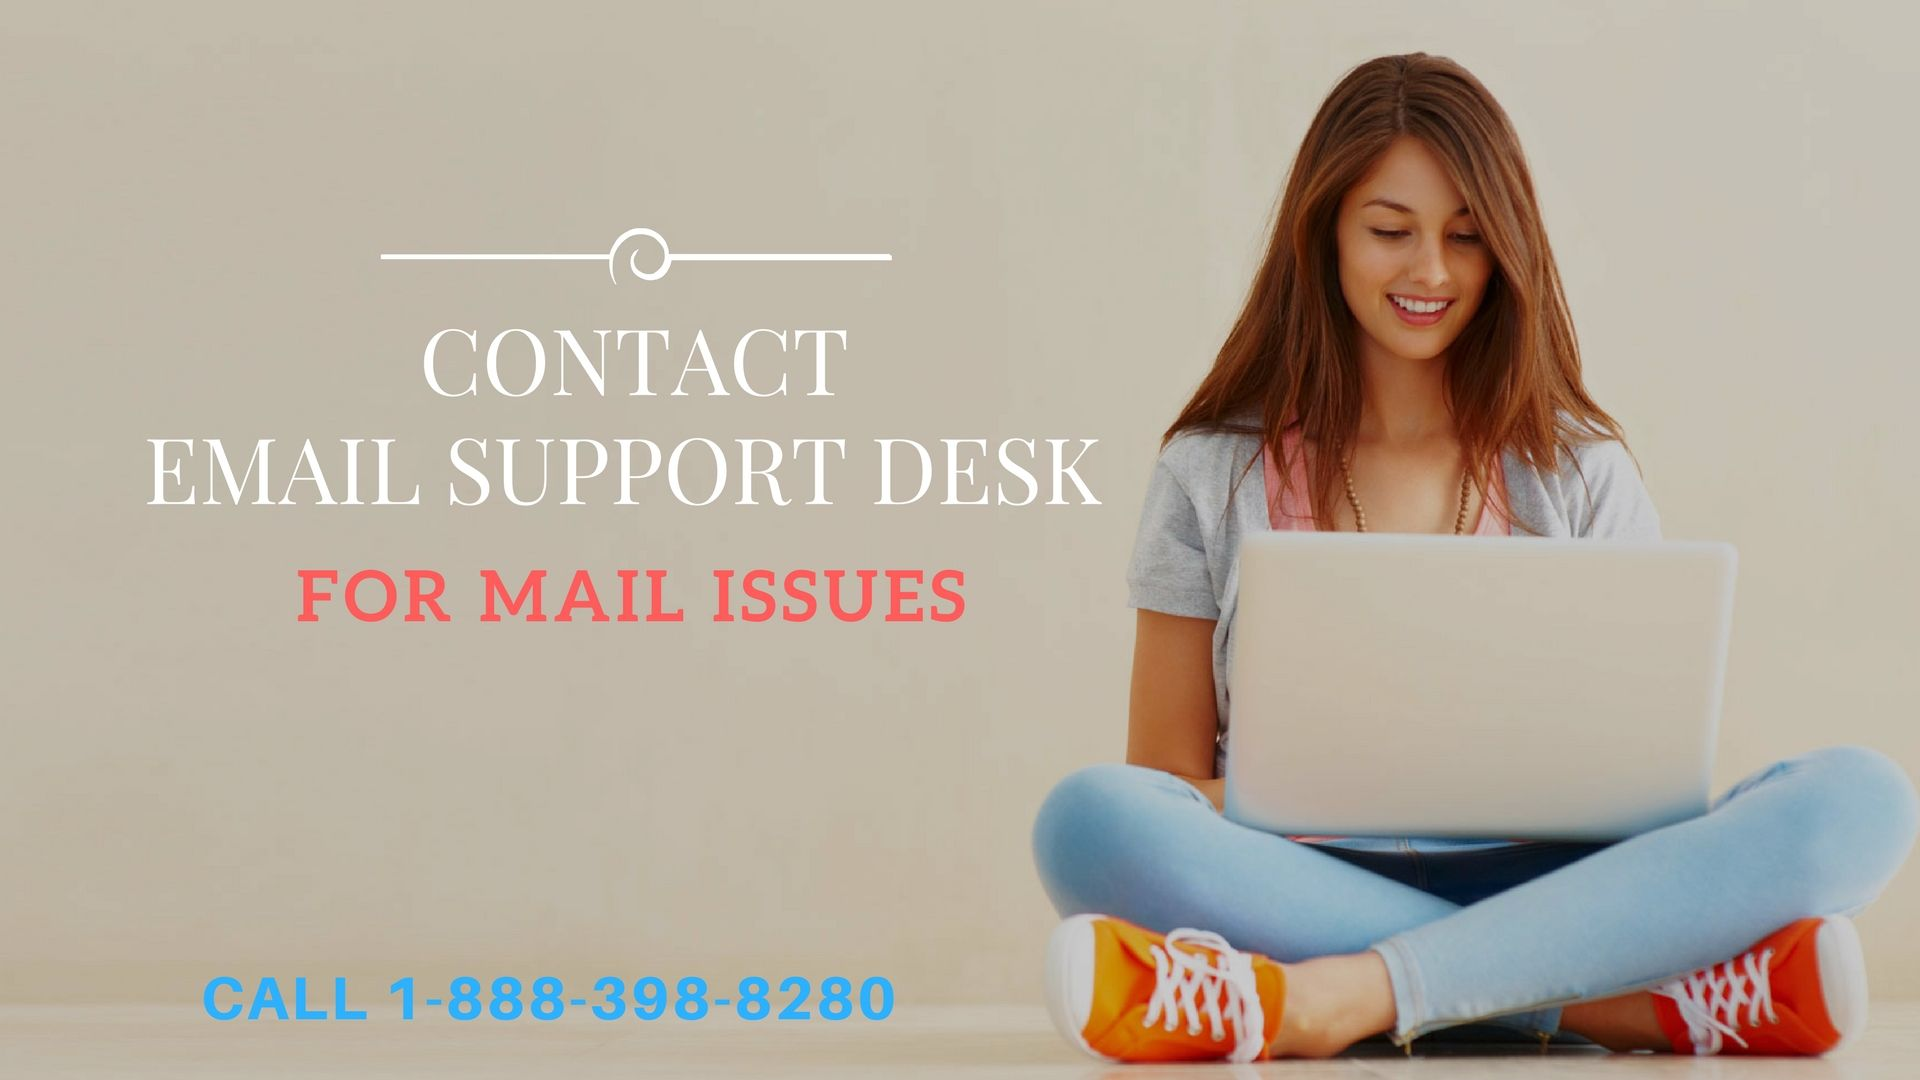 Contact Yahoo Customer Care For Yahoo Mail Issues Online